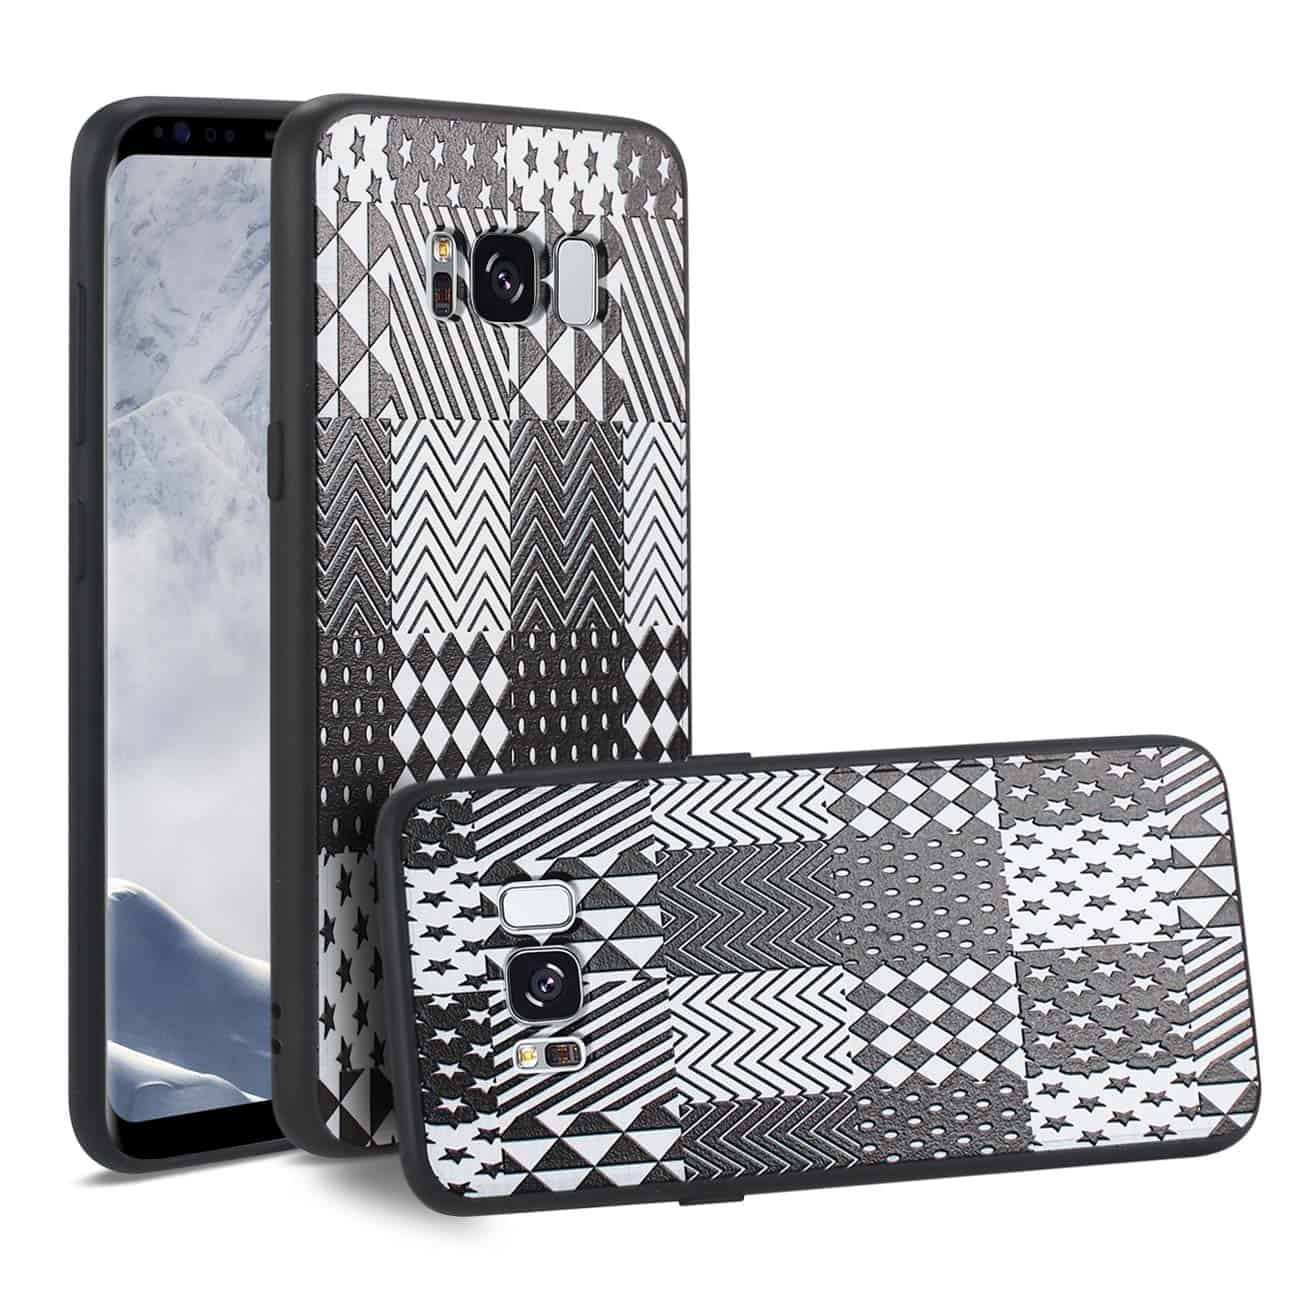 SAMSUNG GALAXY S8 DESIGN TPU CASE WITH VERSATILE SHAPE PATTERNS